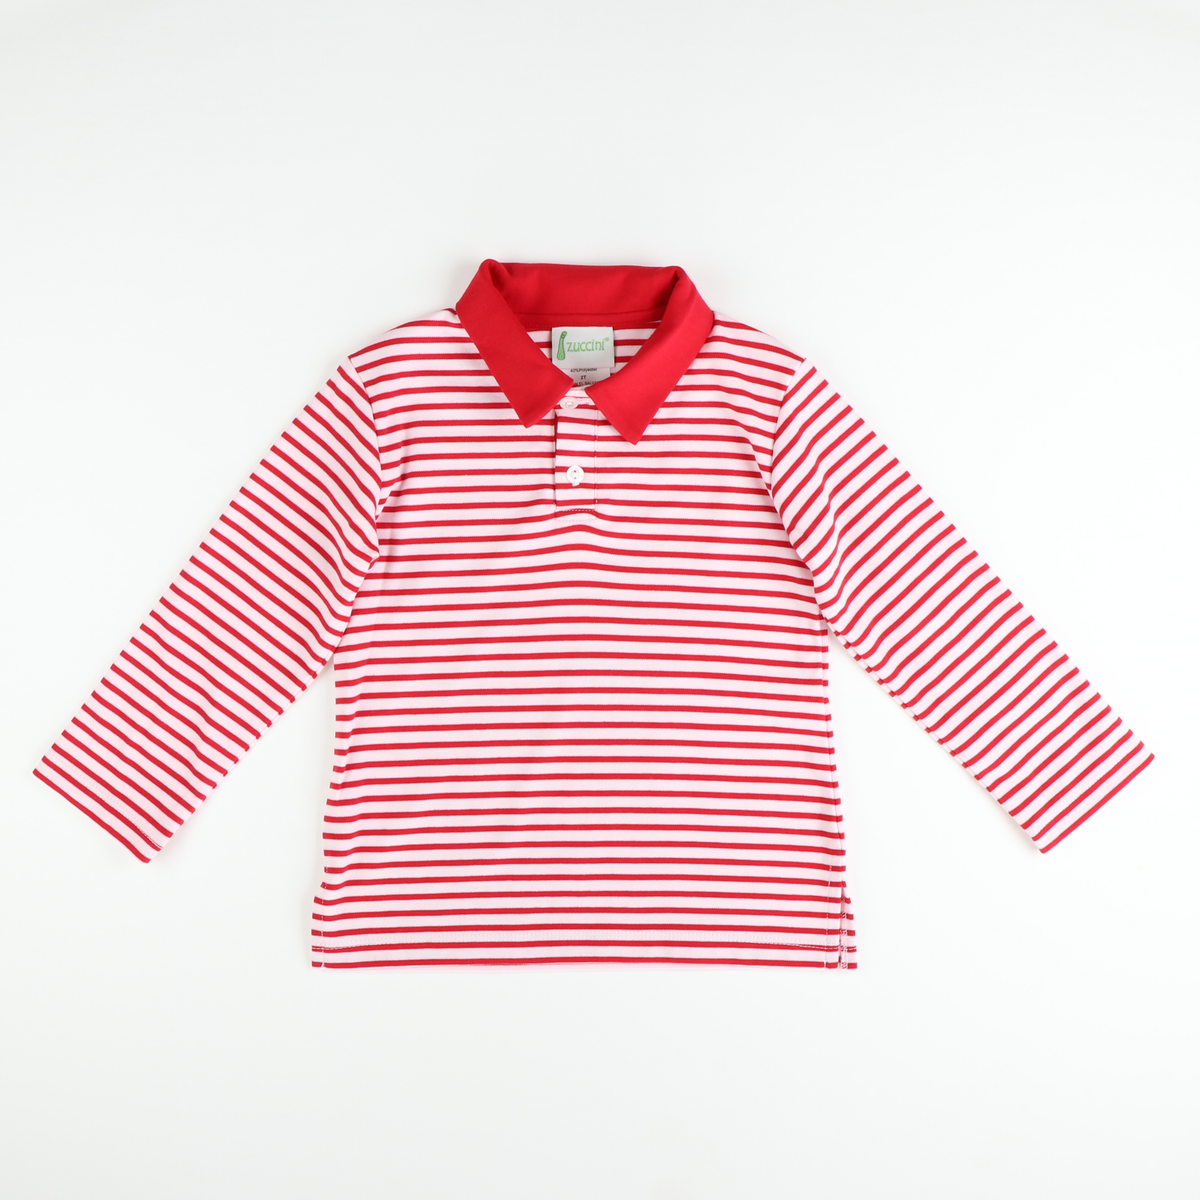 Classic Boys Polo - Red Stripe Knit